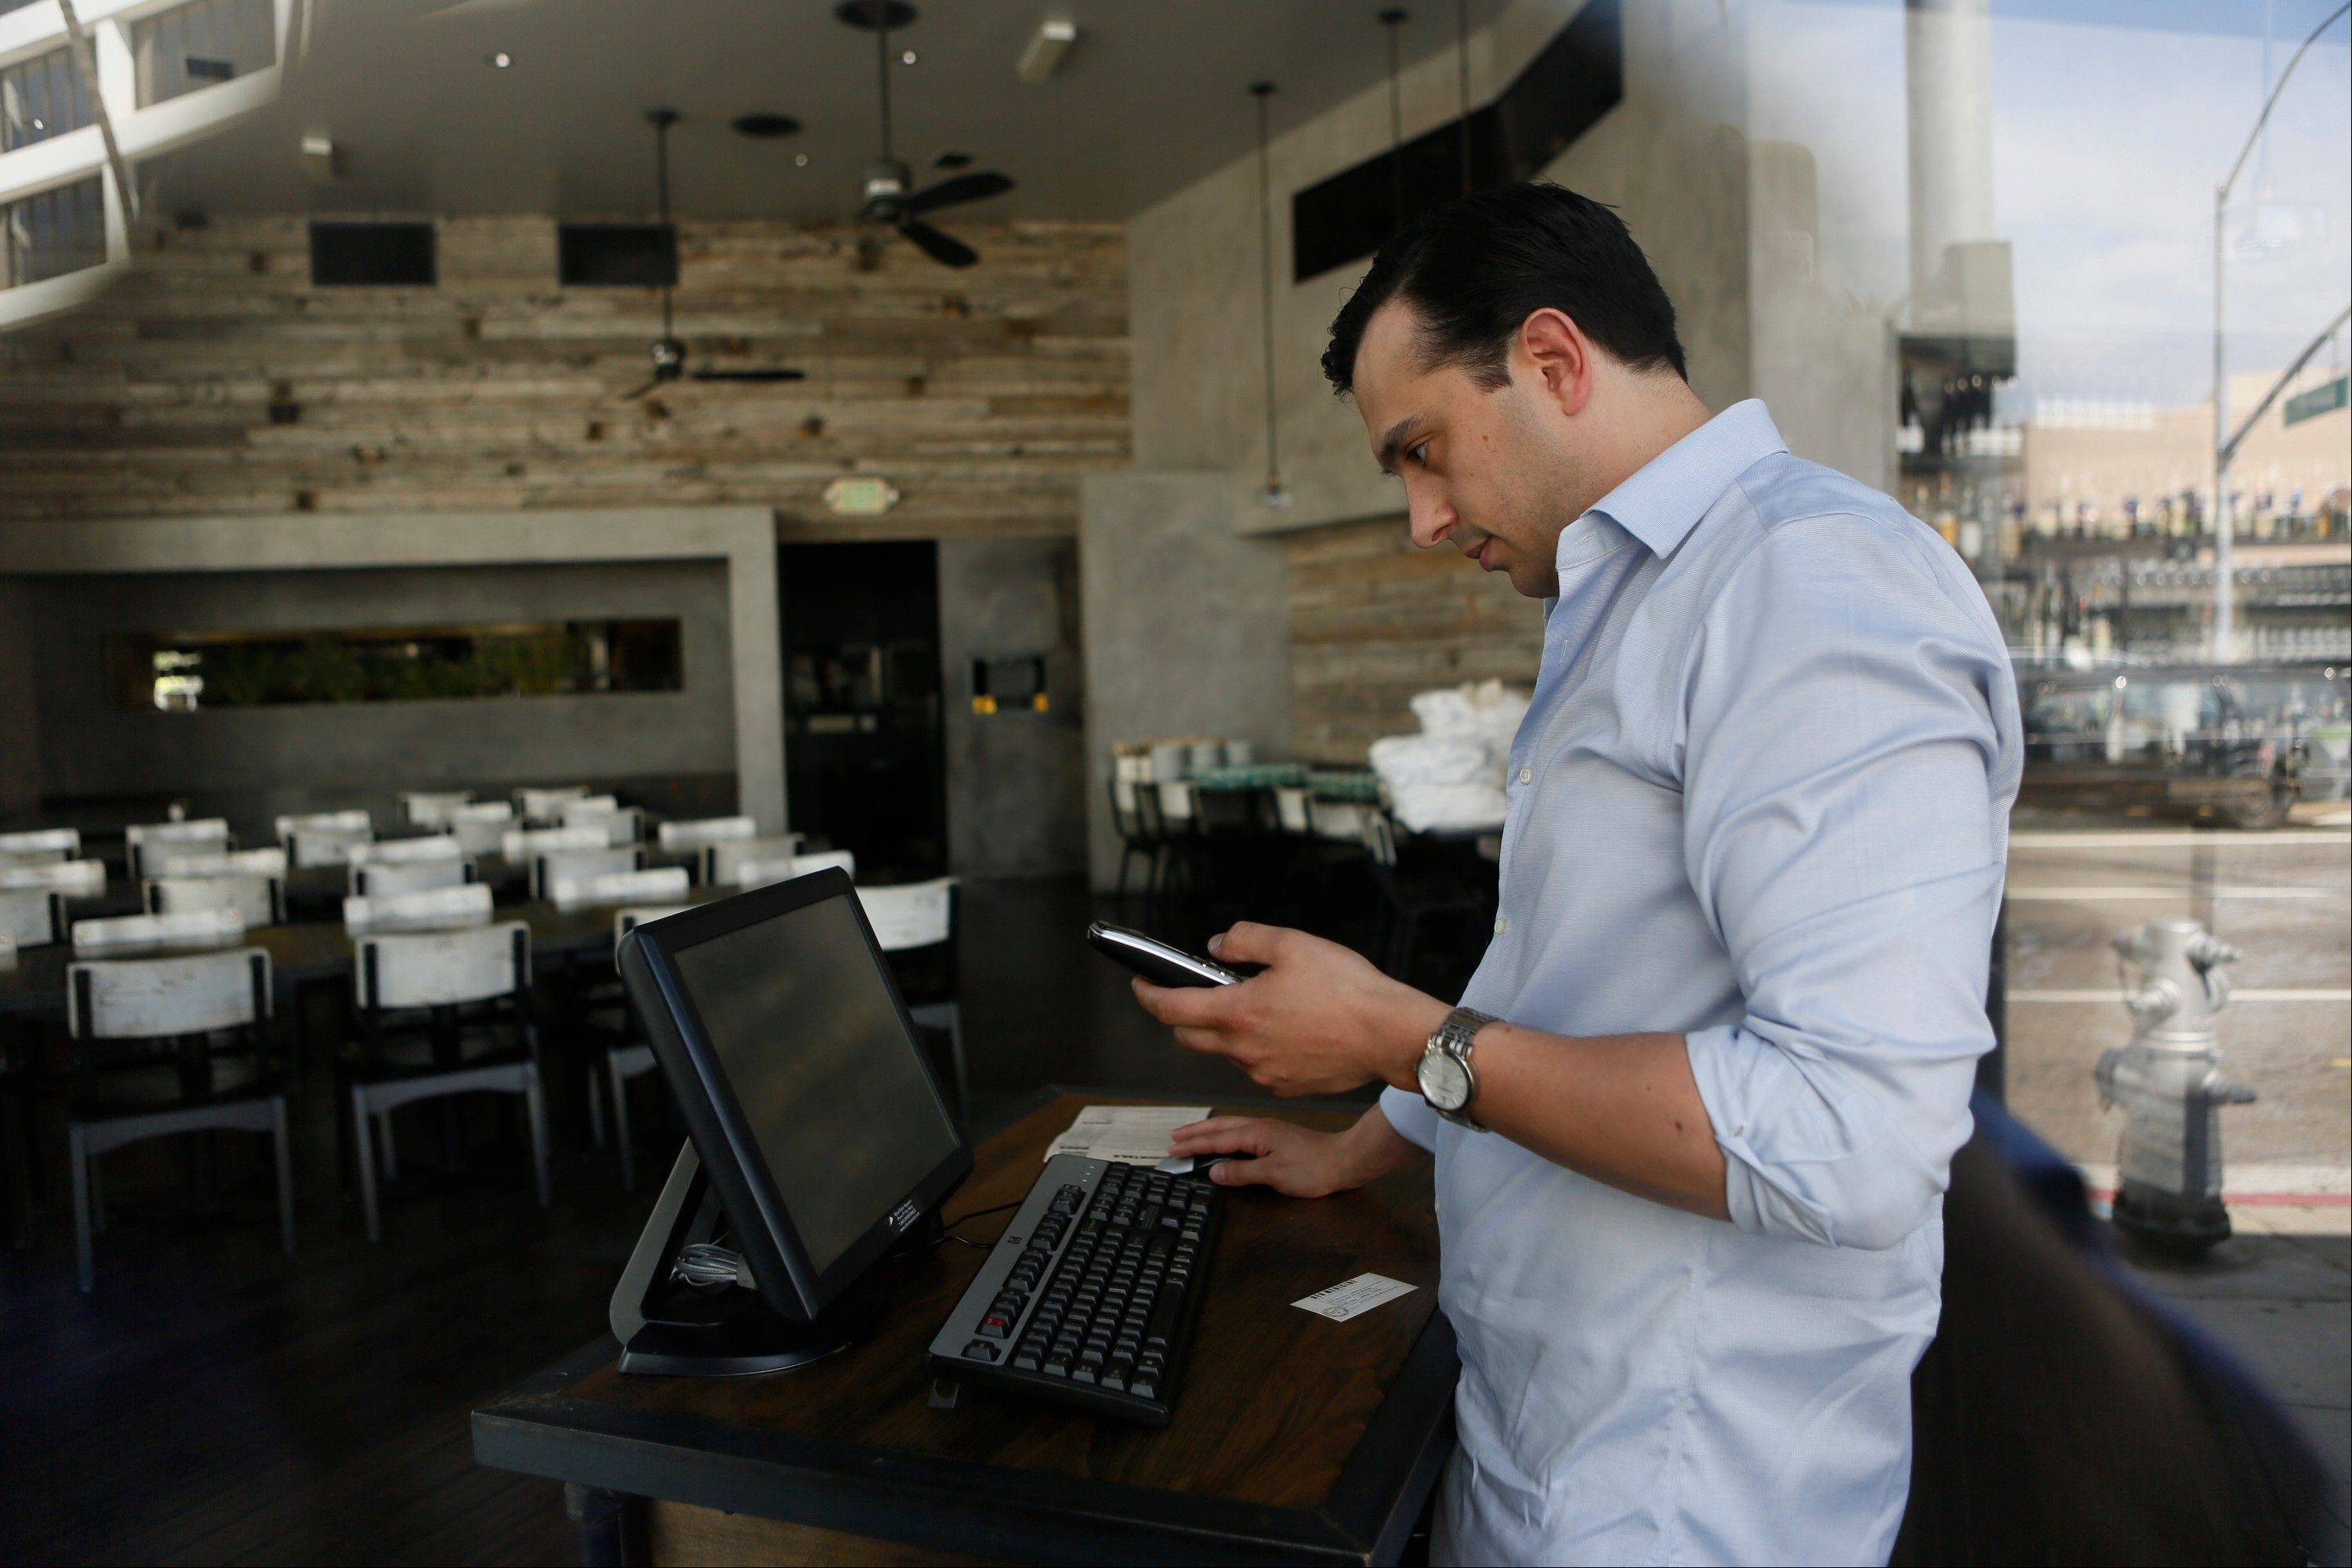 A Red Medicine employee stands at a computer terminal at the Beverly Hills, Calif. restaurant. Noah Ellis, co-owner of Red Medicine, recently took to Twitter to publicly call out those who skipped out on their reservations on a recent busy Saturday.